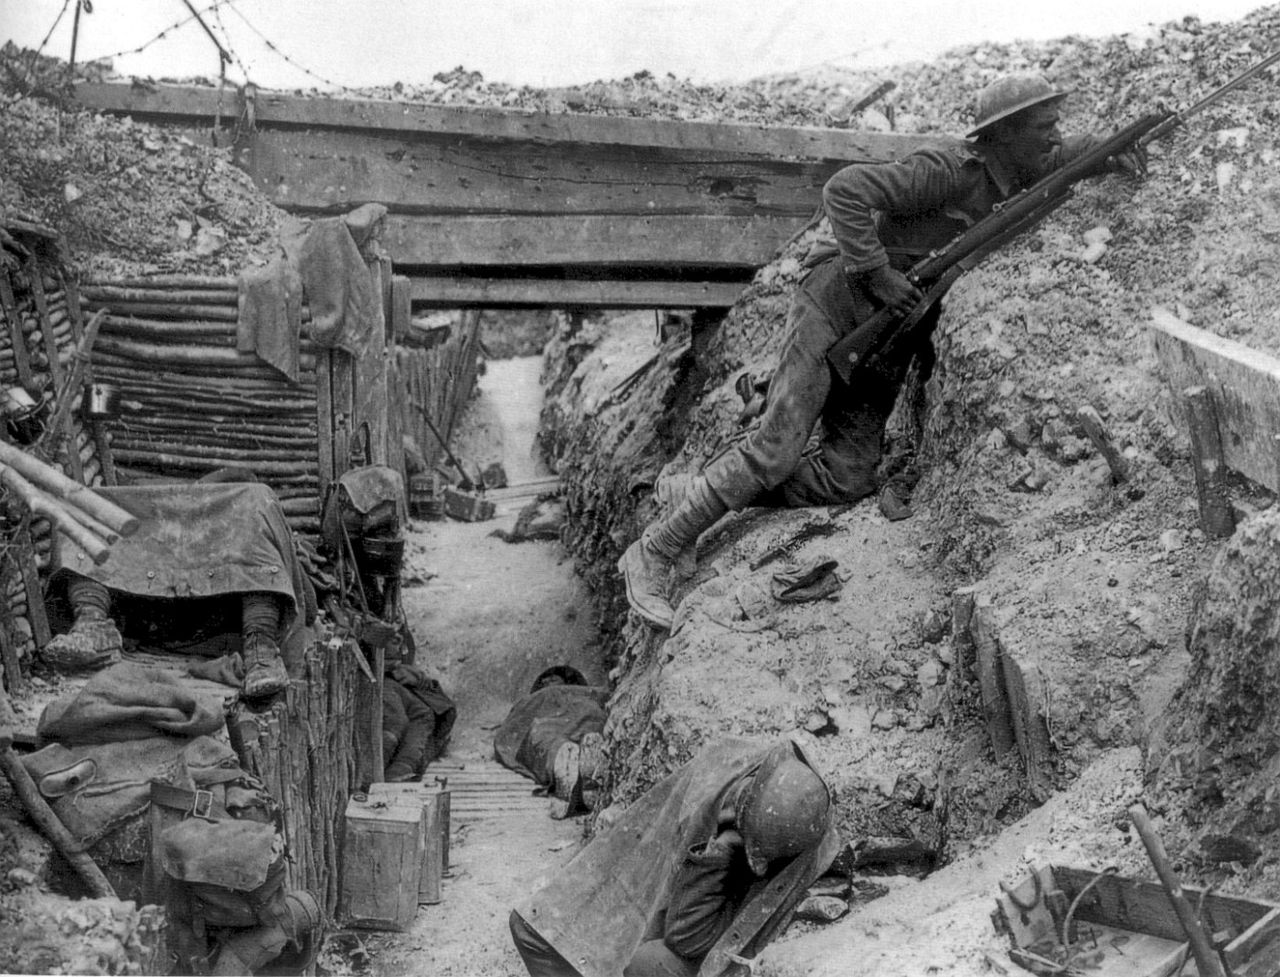 The trenches of World War I act as the both the living quarters and battleground for British soldiers in the movie 1917.